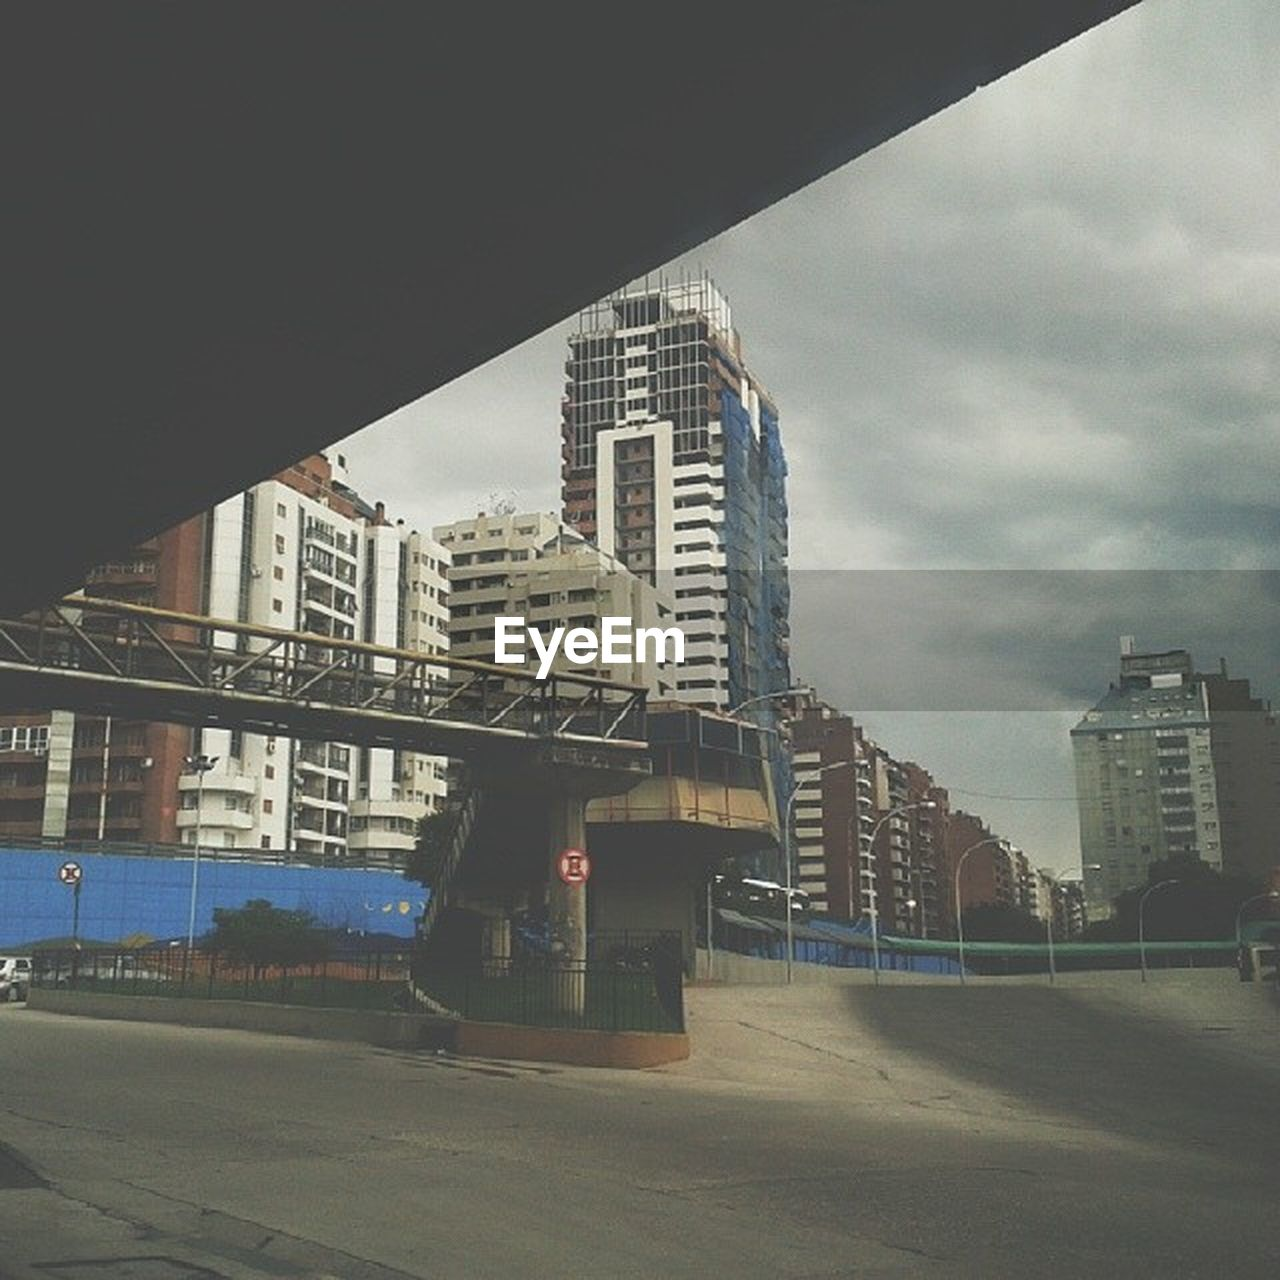 architecture, built structure, skyscraper, city, building exterior, road, modern, bridge - man made structure, outdoors, sky, day, transportation, travel destinations, no people, cityscape